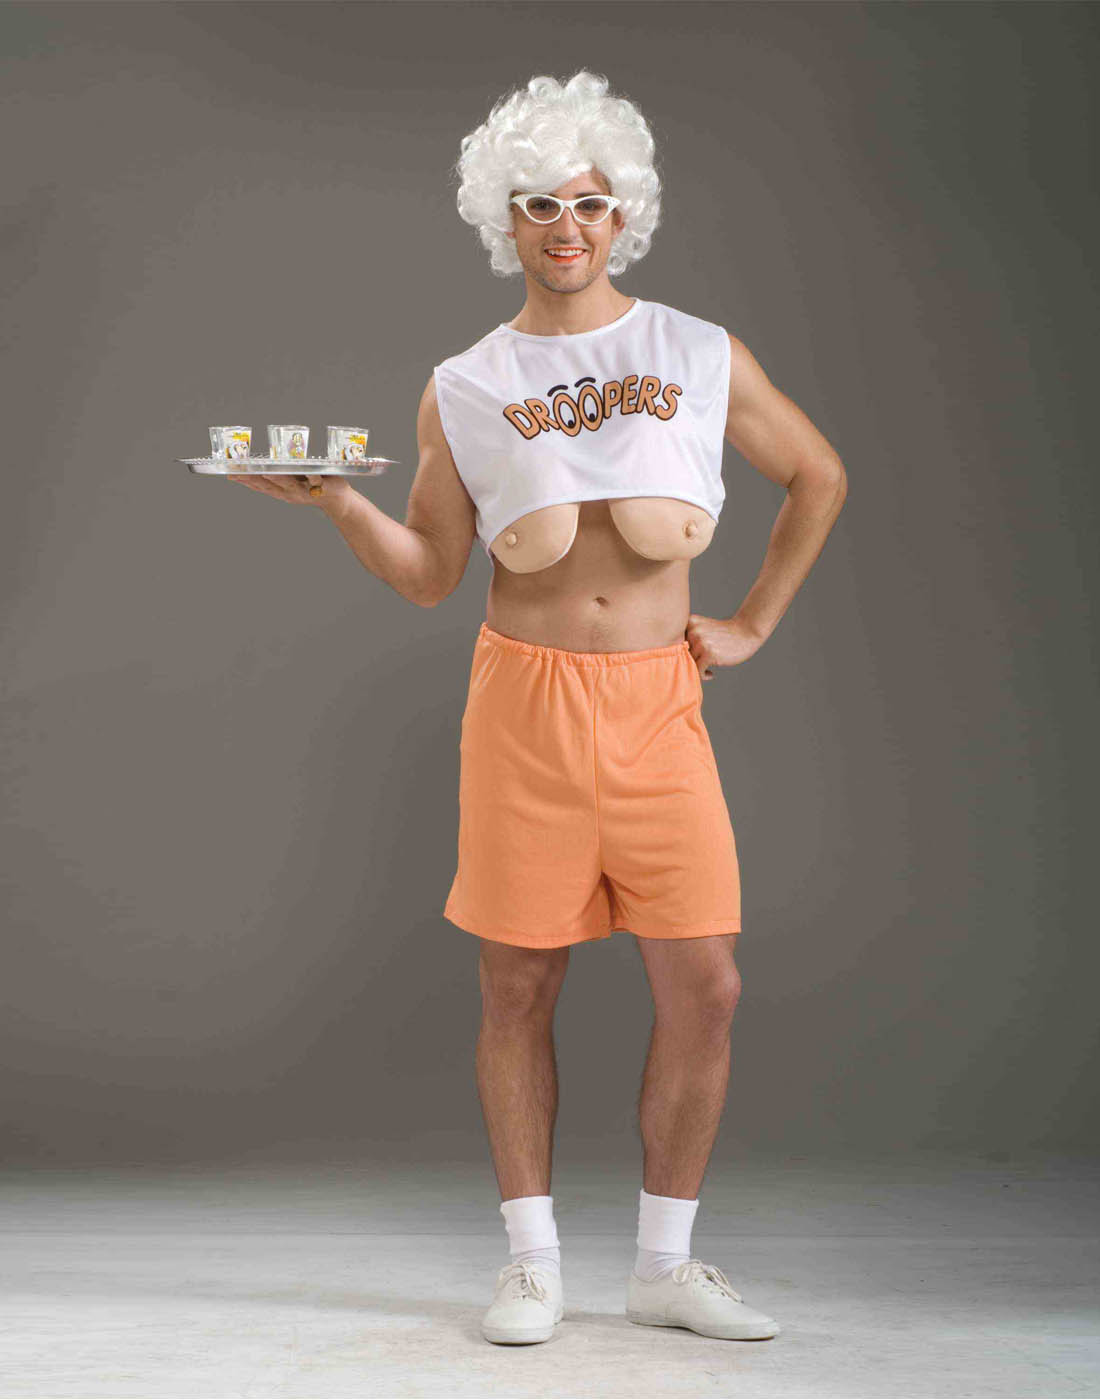 Adult Funny Old Lady Waitress Droopers Hooters For Men -6265